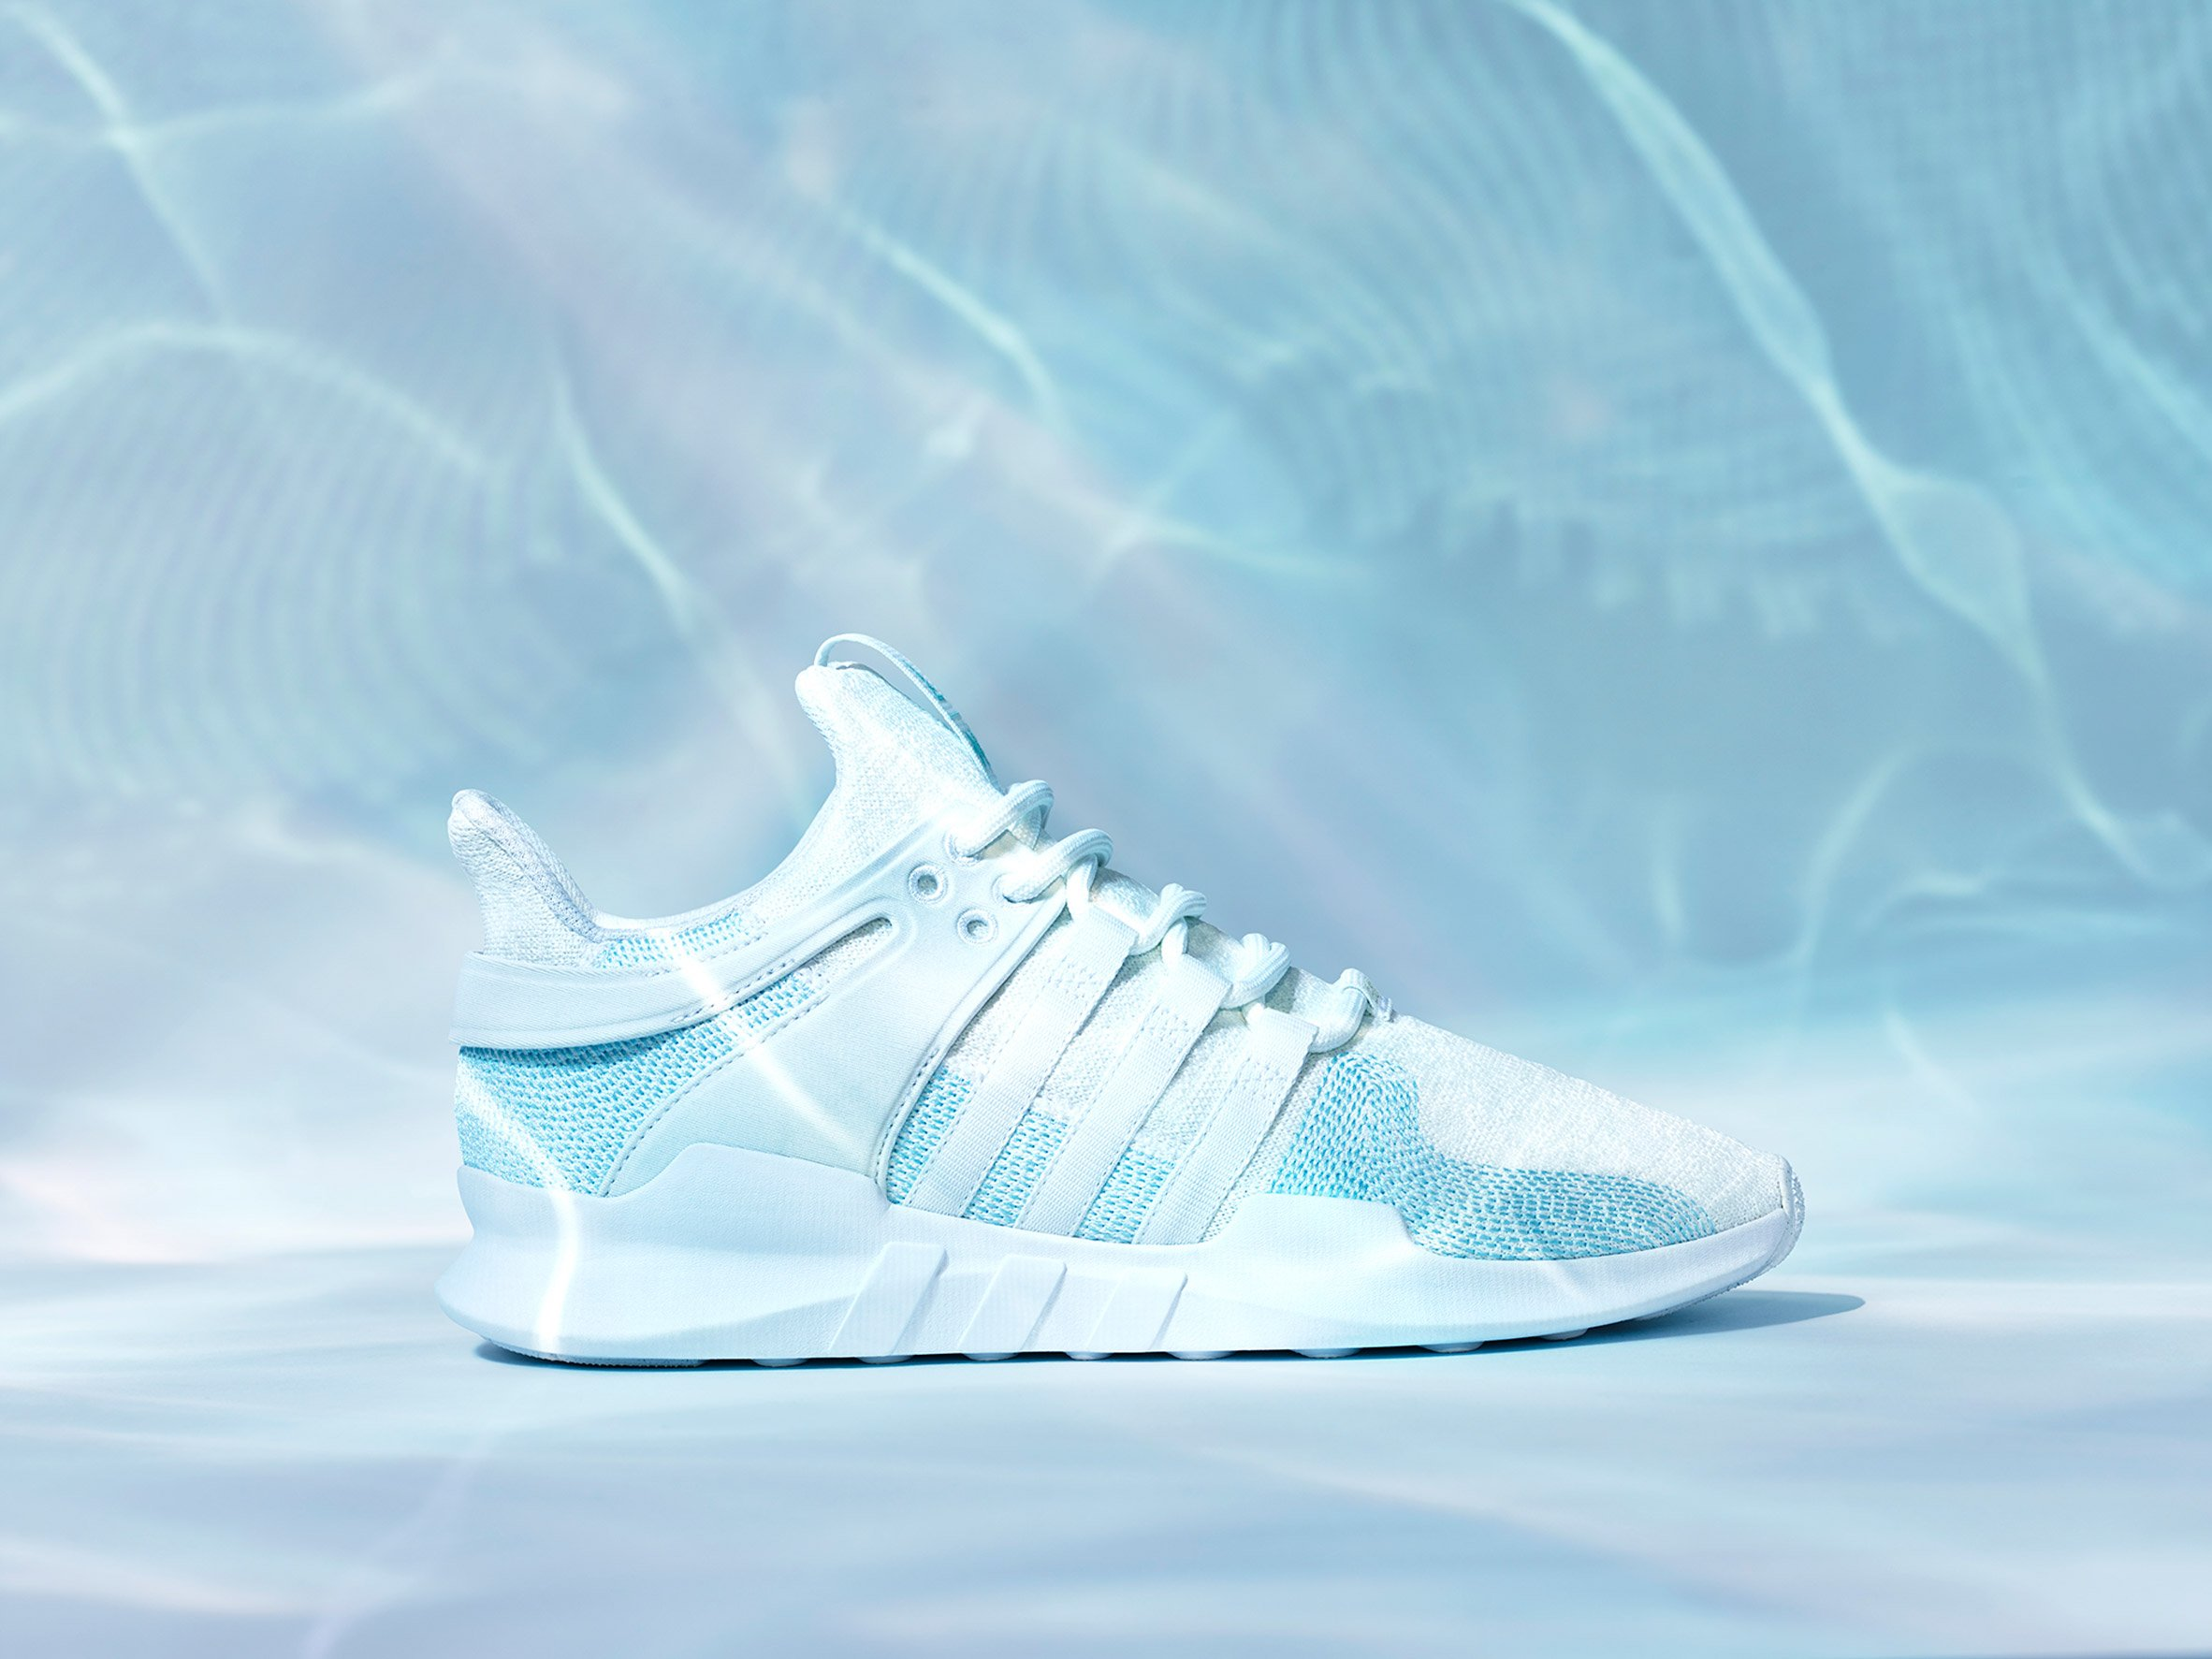 online retailer a9173 3e1fd Adidas uses Parley ocean plastic to update one of its ...